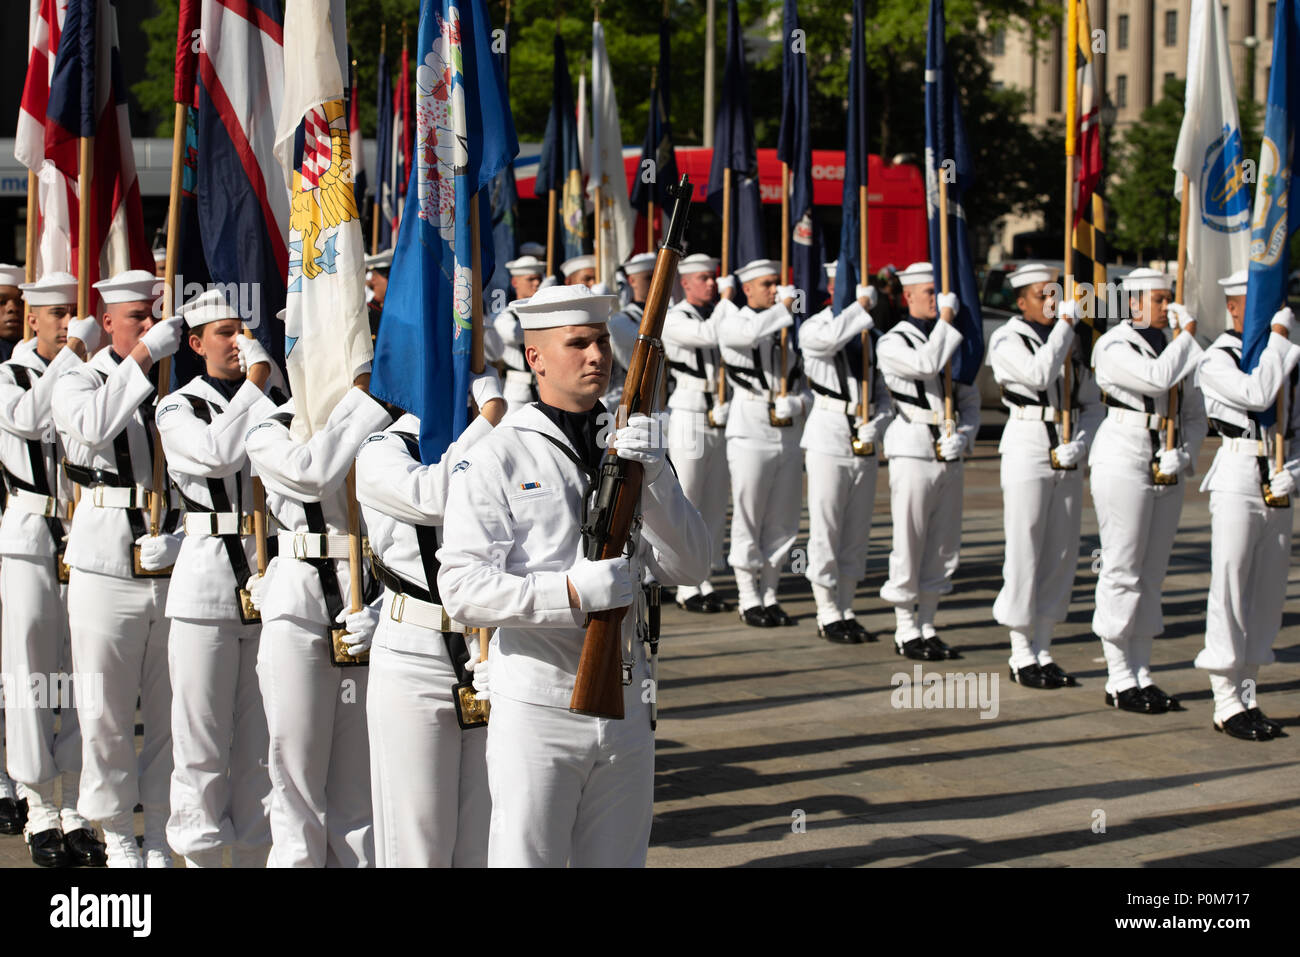 180605-N-HG258-1057 WASHINGTON (June 5, 2018) Members of the U.S. Navy Ceremonial guard march onto the U.S. Navy Memorial in Washington, D.C., during the commemoration of the 76th anniversary of the Battle of Midway. The Battle of Midway began on June 4 in 1942 and stands as one of the U.S. Navy's most historically significant naval battles. Fought on the high seas of the Pacific more than half a century ago, this battle altered the course of the war in the Pacific and thereby shaped the outcome of world events. (U.S. Navy photo by Senior Chief Musician Stephen Hassay/Released) - Stock Image